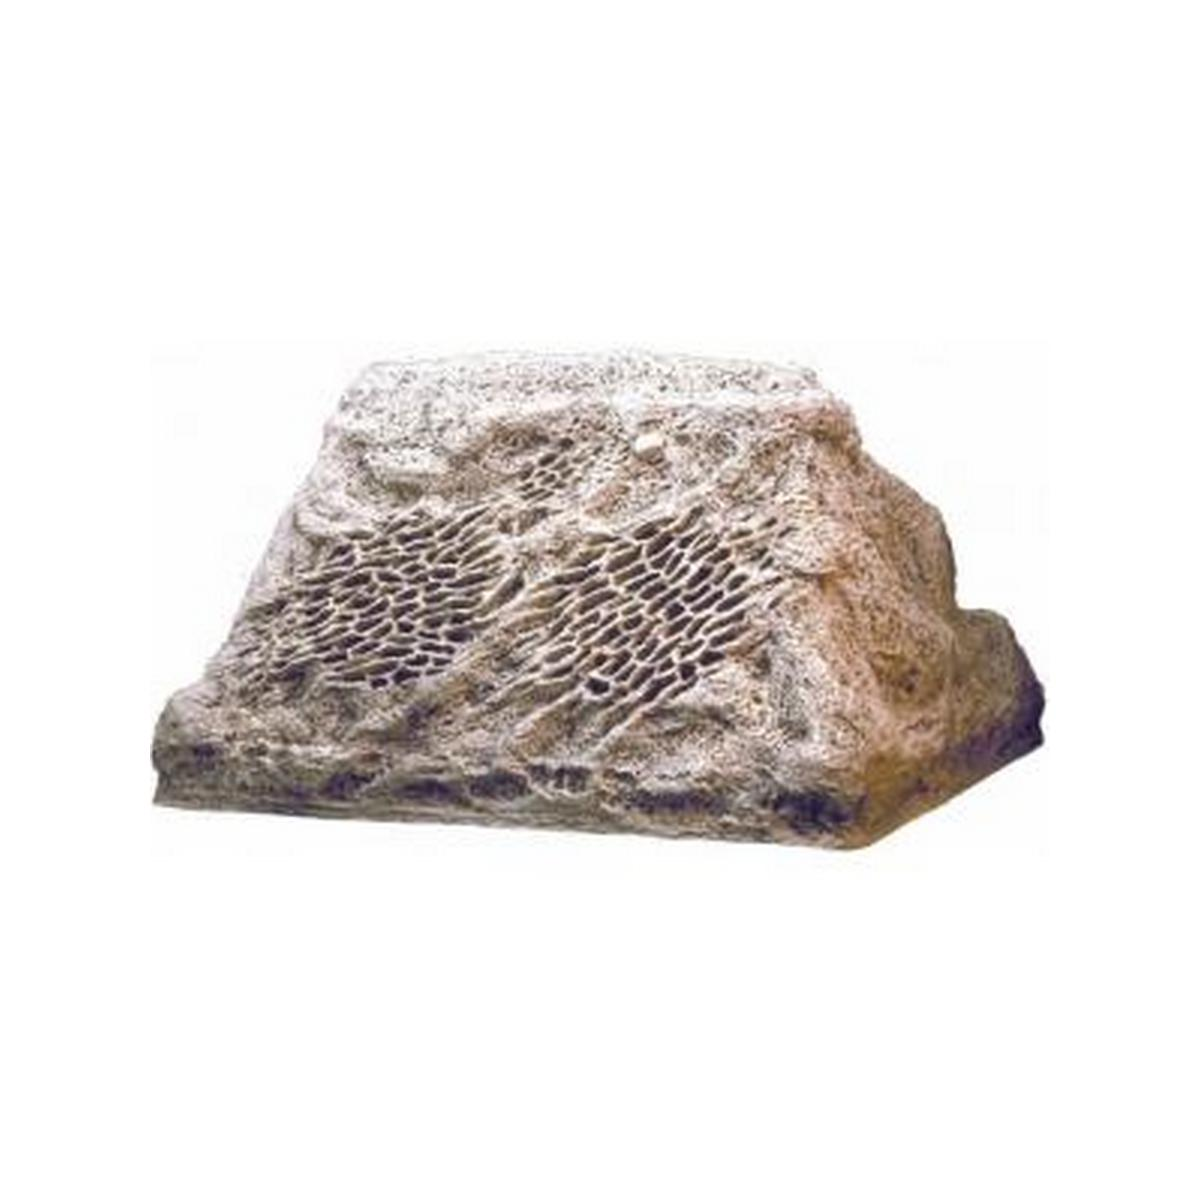 Lava-rock motif, 2-way speaker delivers 200 watt